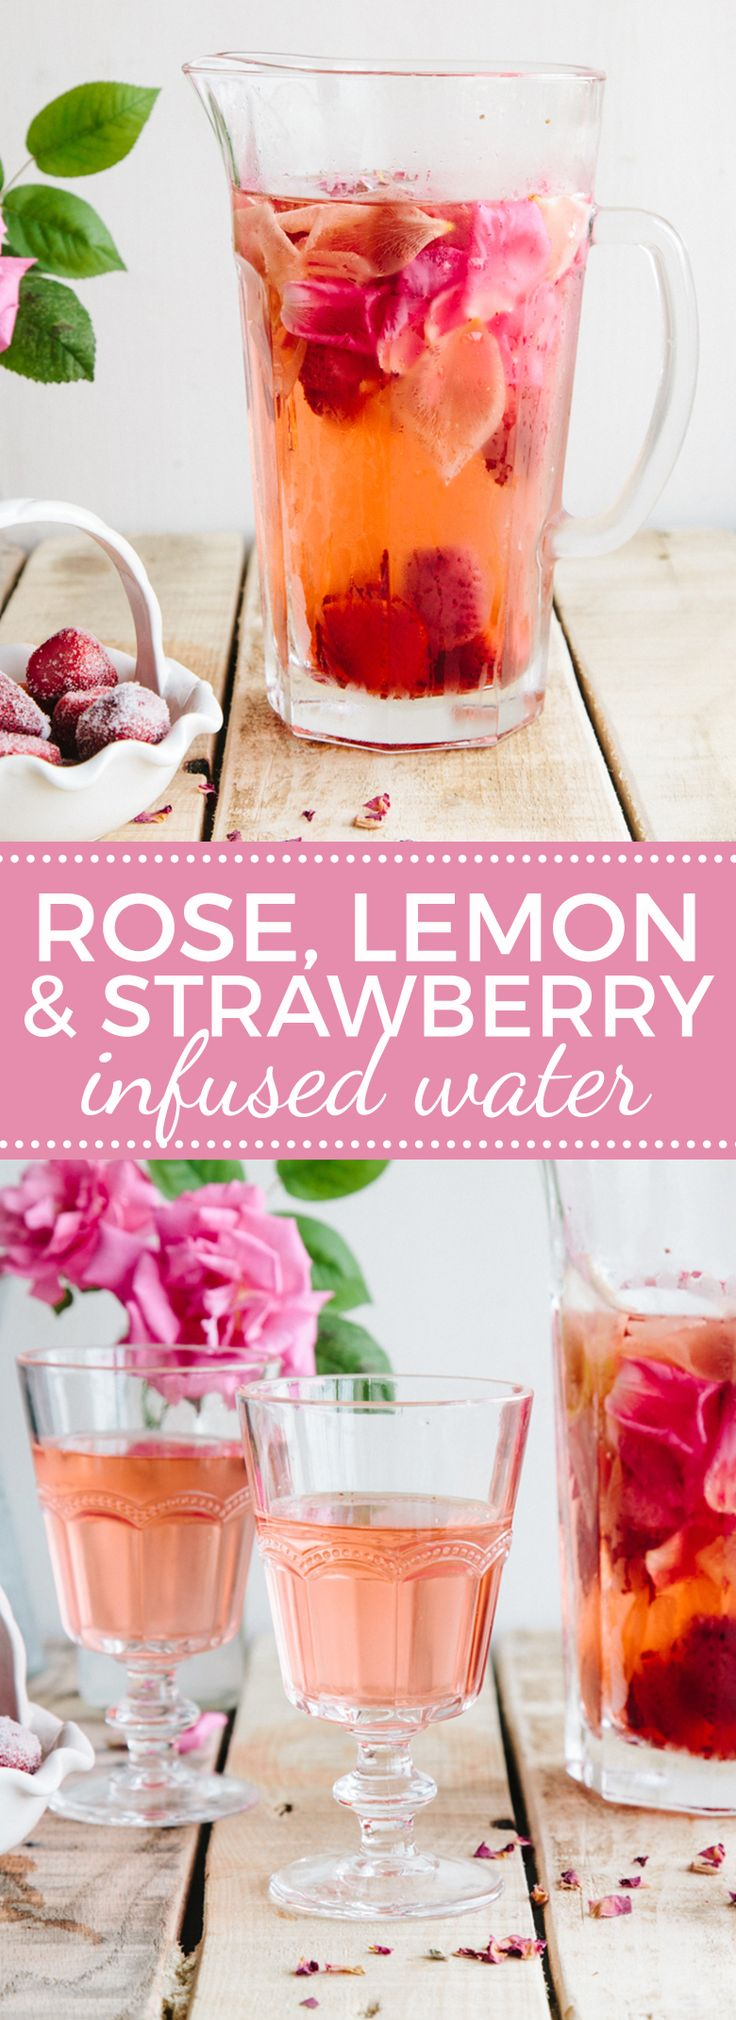 Rose, Lemon & Strawberry Infused Water                              …